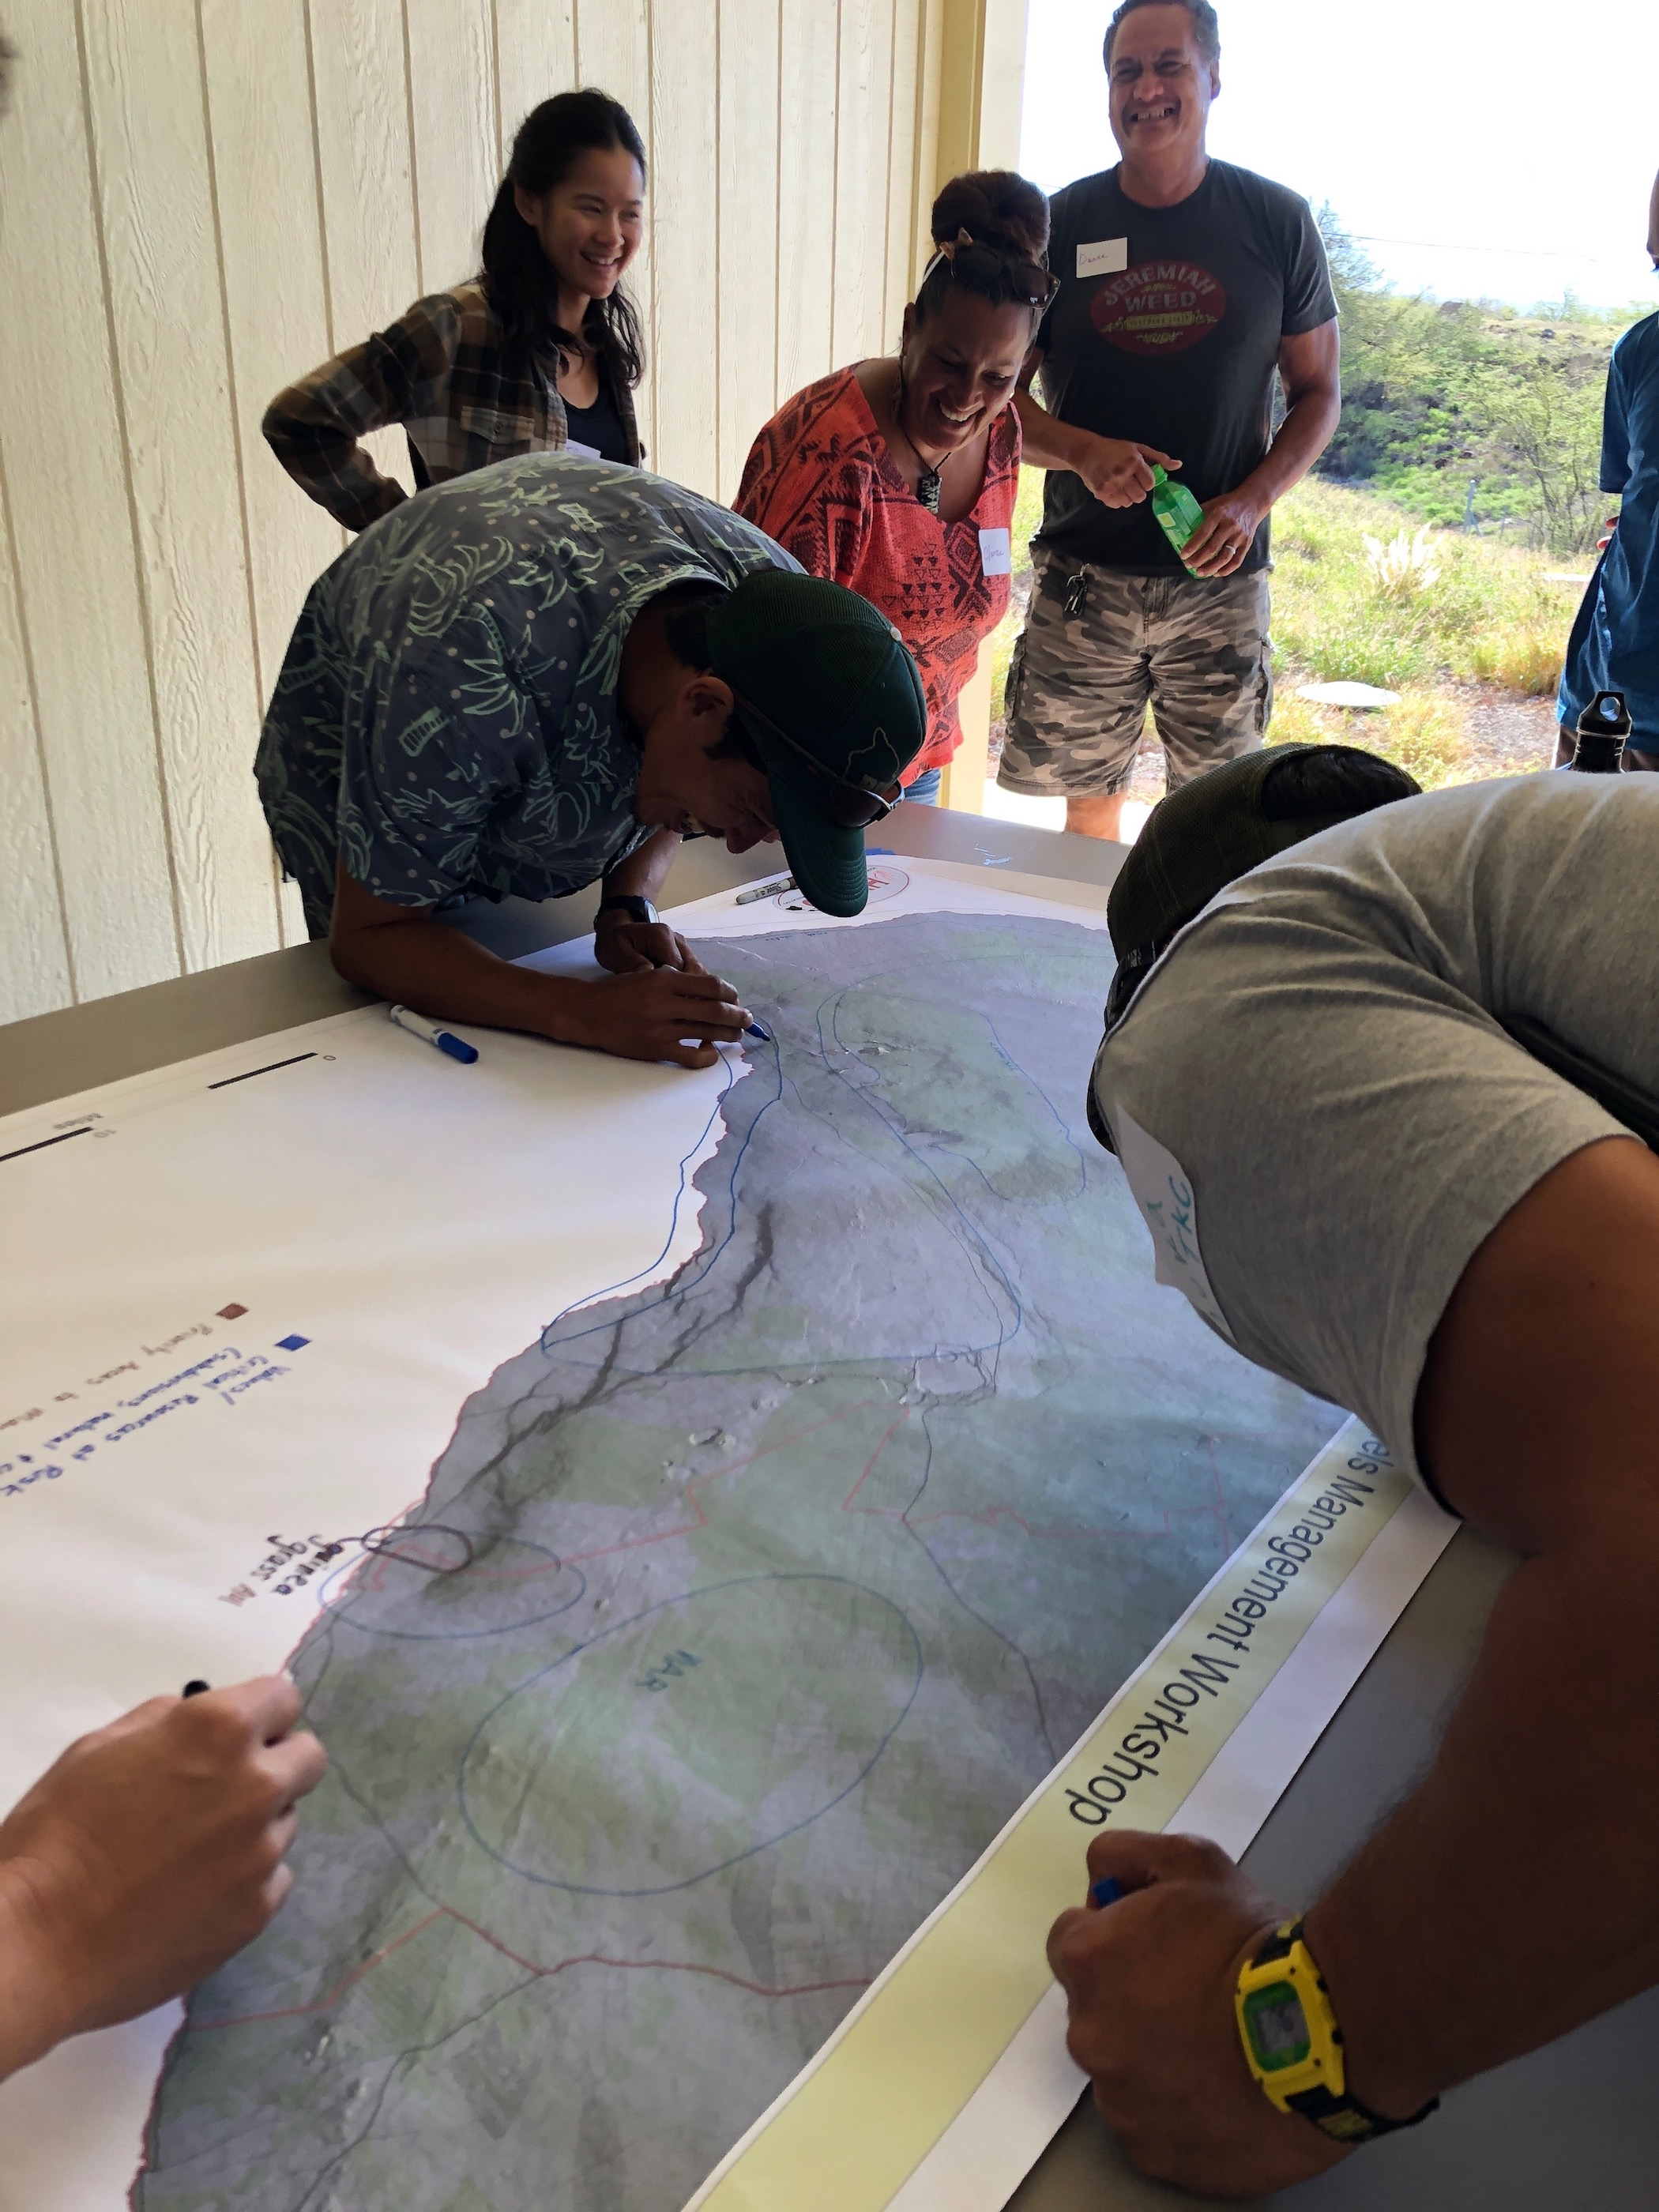 Hawaii Island Kailapa Vegetative Fuels Management Collaborative Action Planning Workshop_2_26_2019_30.jpg